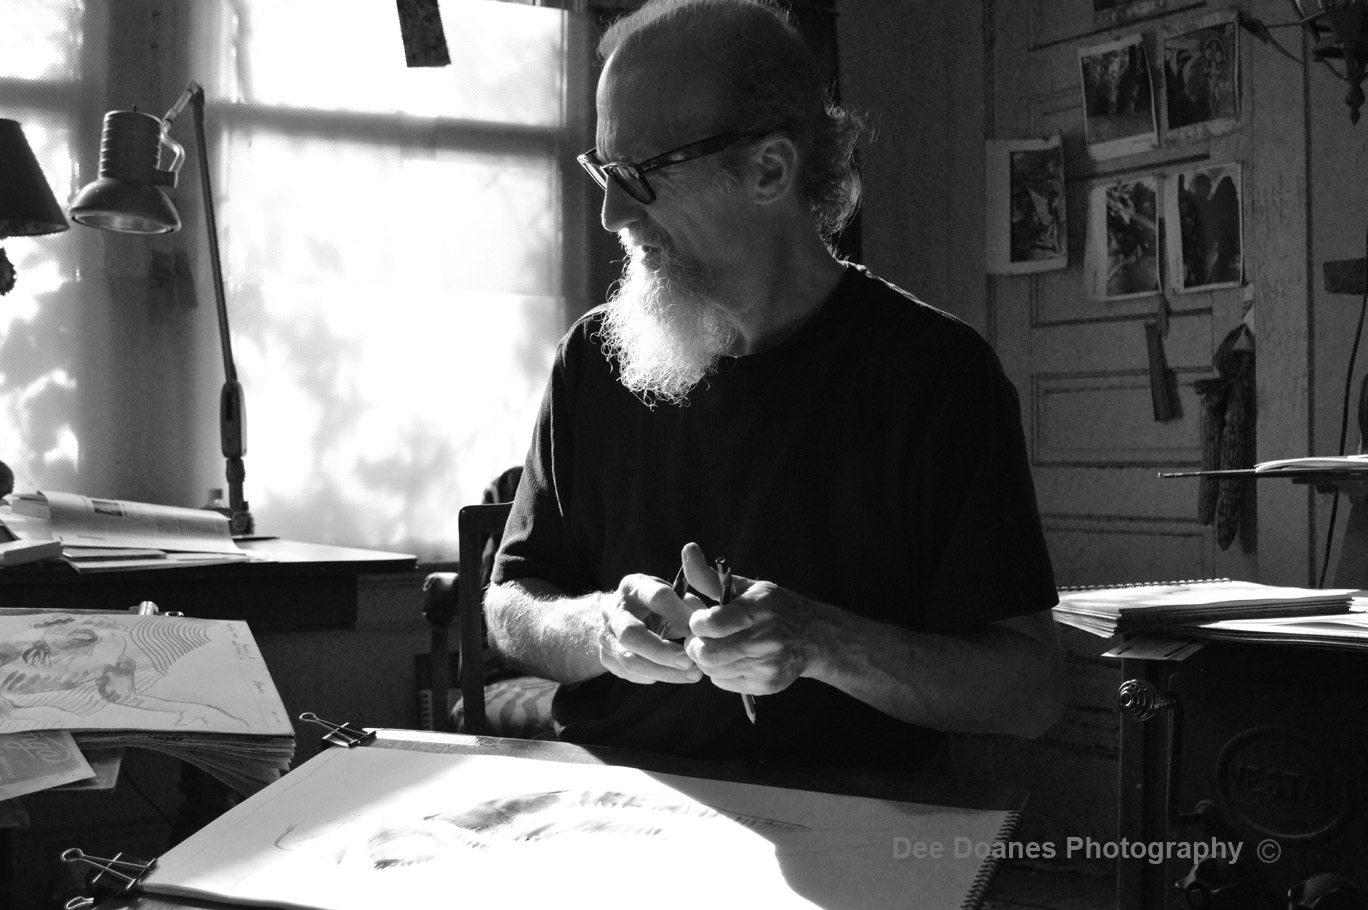 Thomas-creating-Art-BW-copyright